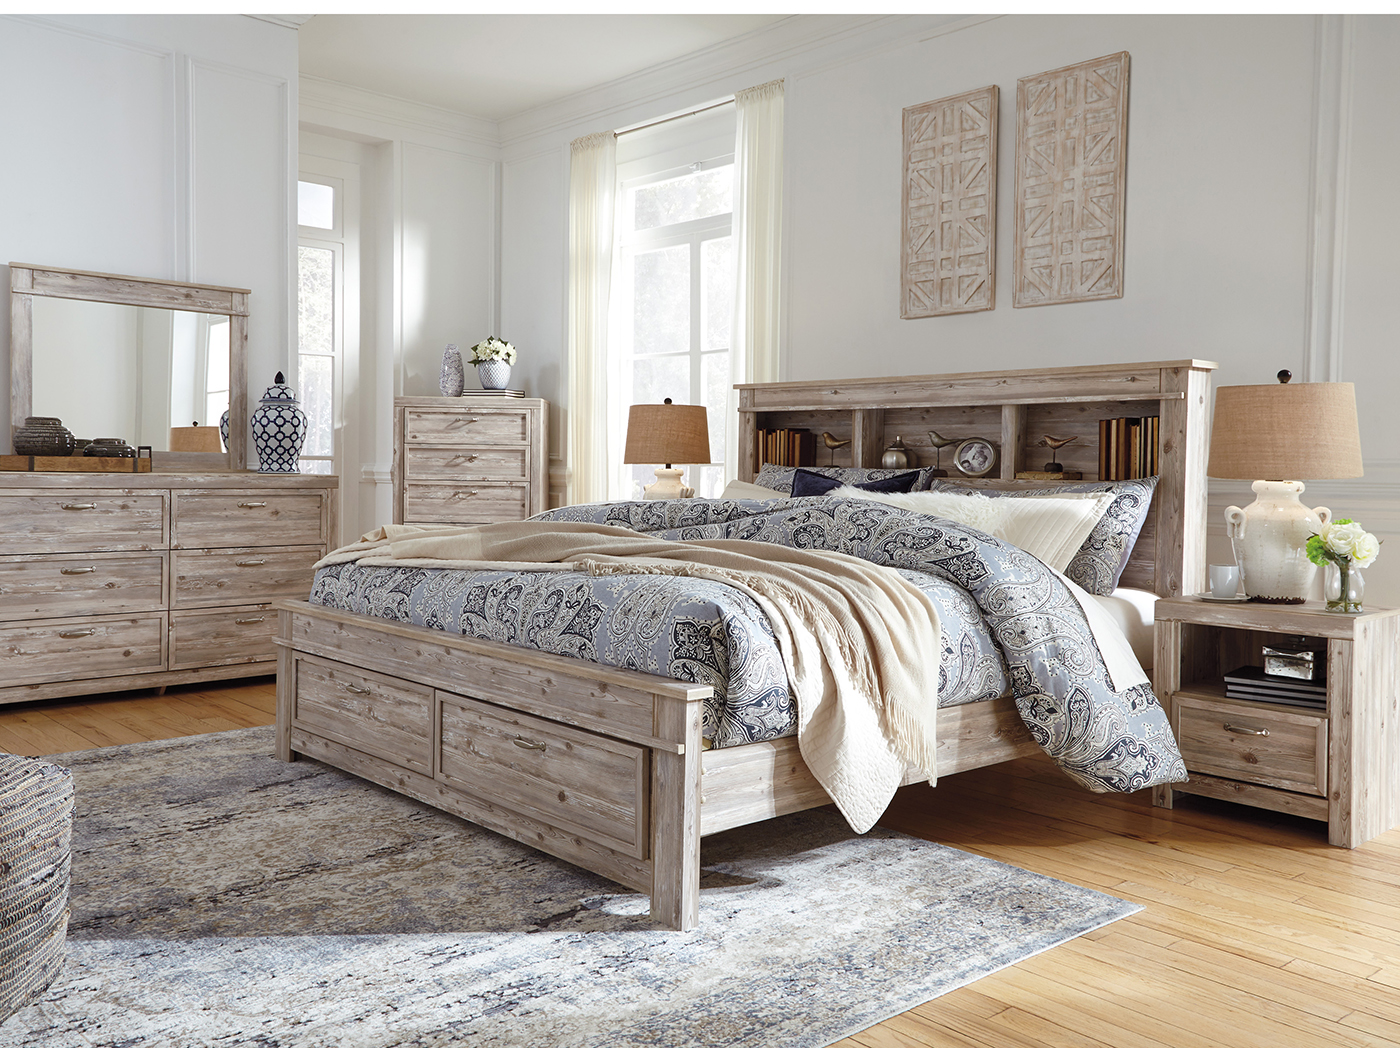 Willabry 3-pc. Queen Bedroom Set